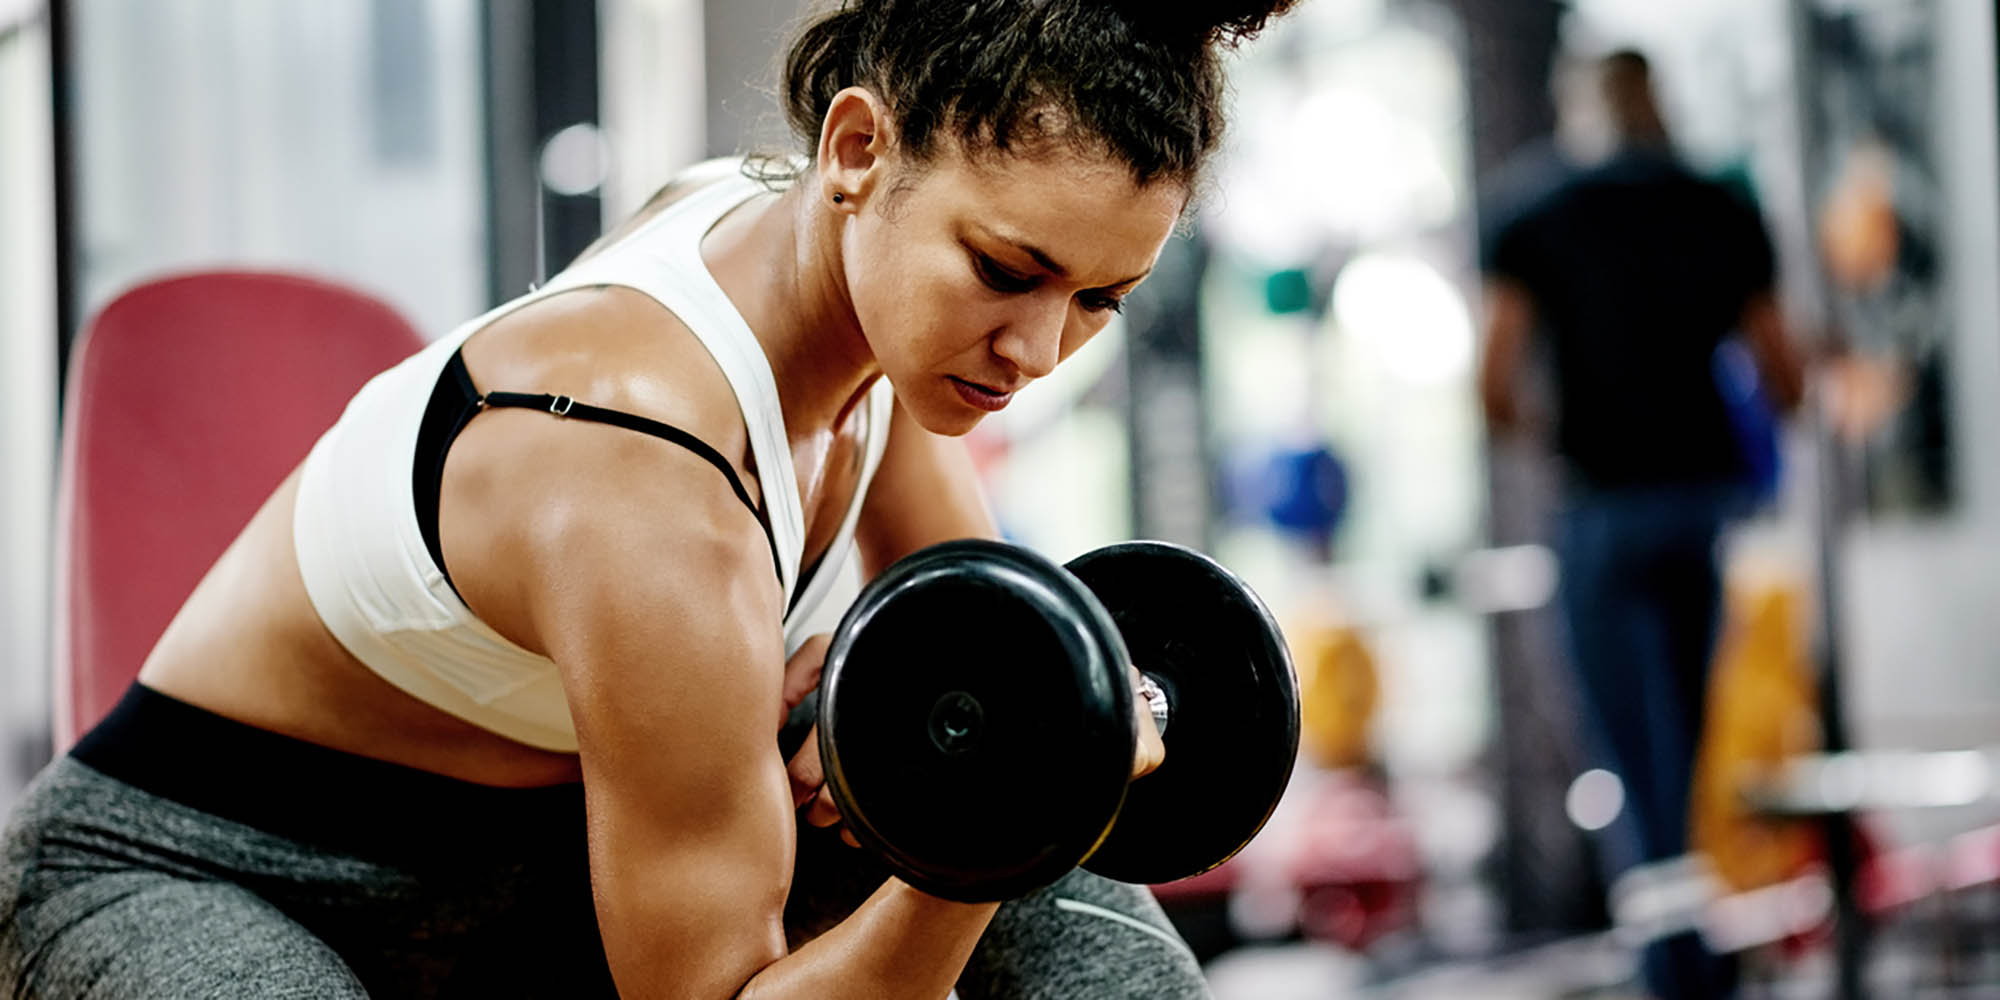 6 Ways To Lose Those Last 5 Pounds Openfit